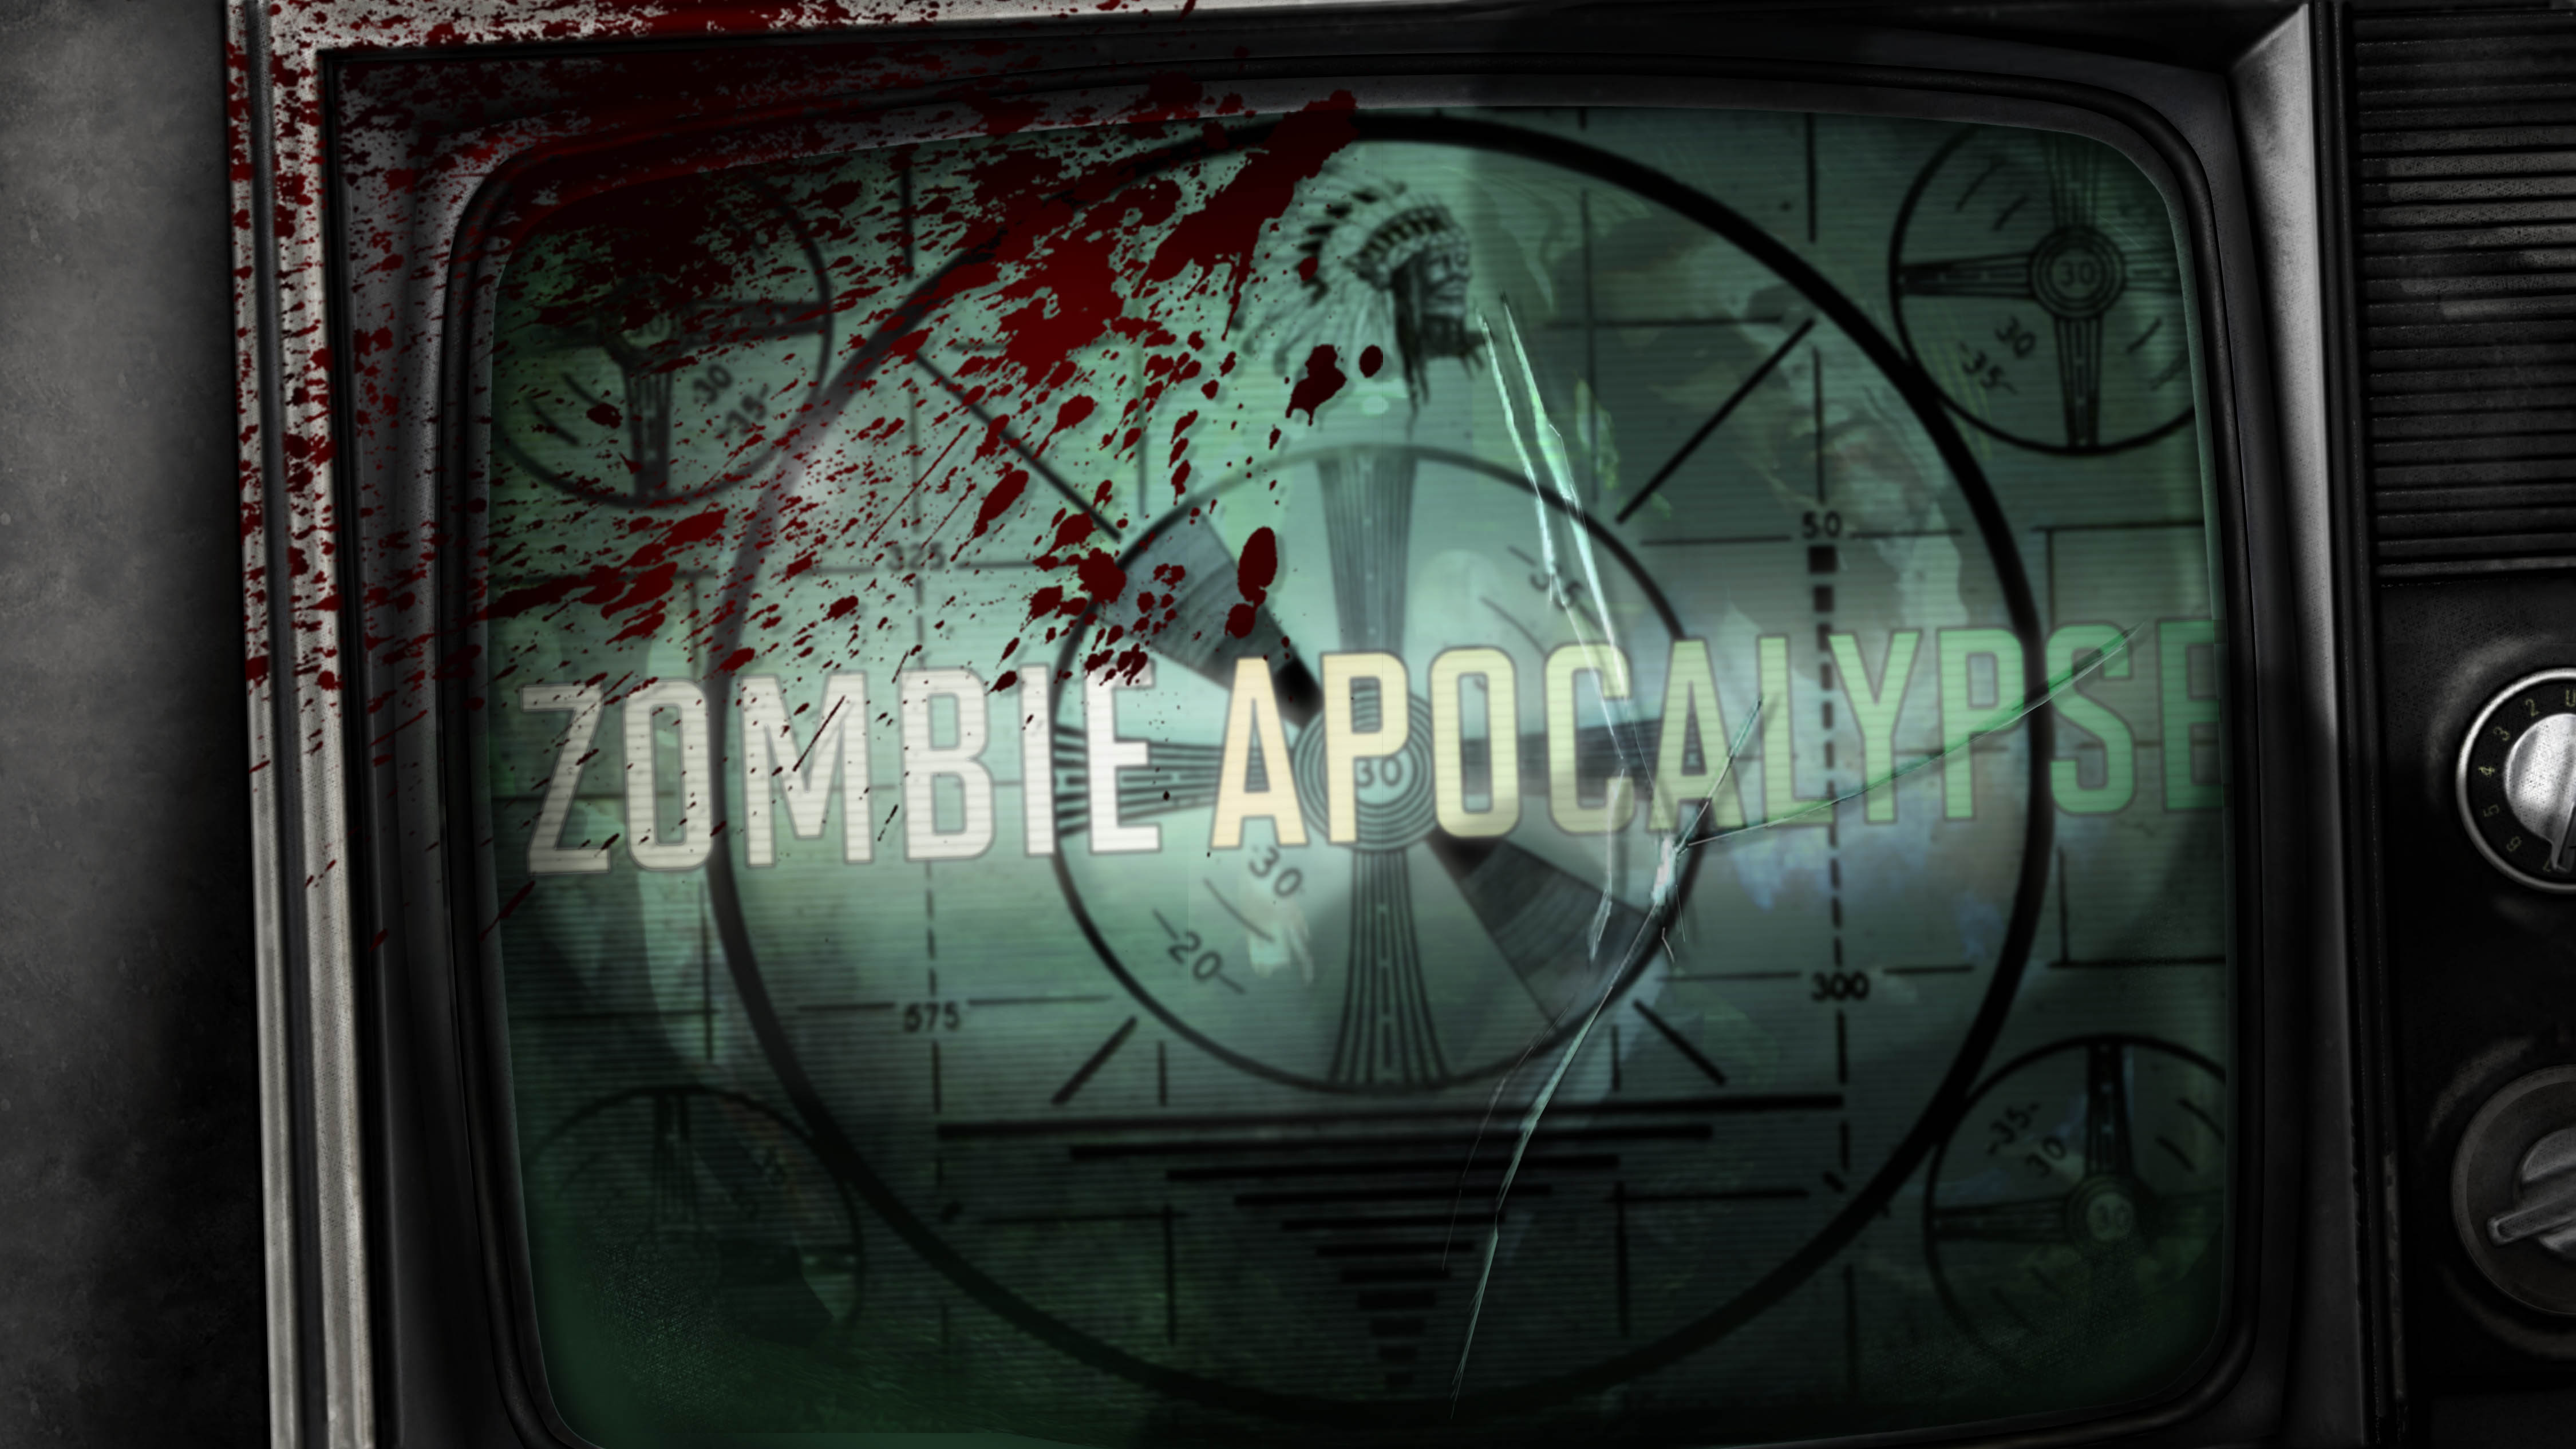 Hd Zombie Girl Wallpaper Zombie 4k Ultra Hd Wallpaper And Background Image